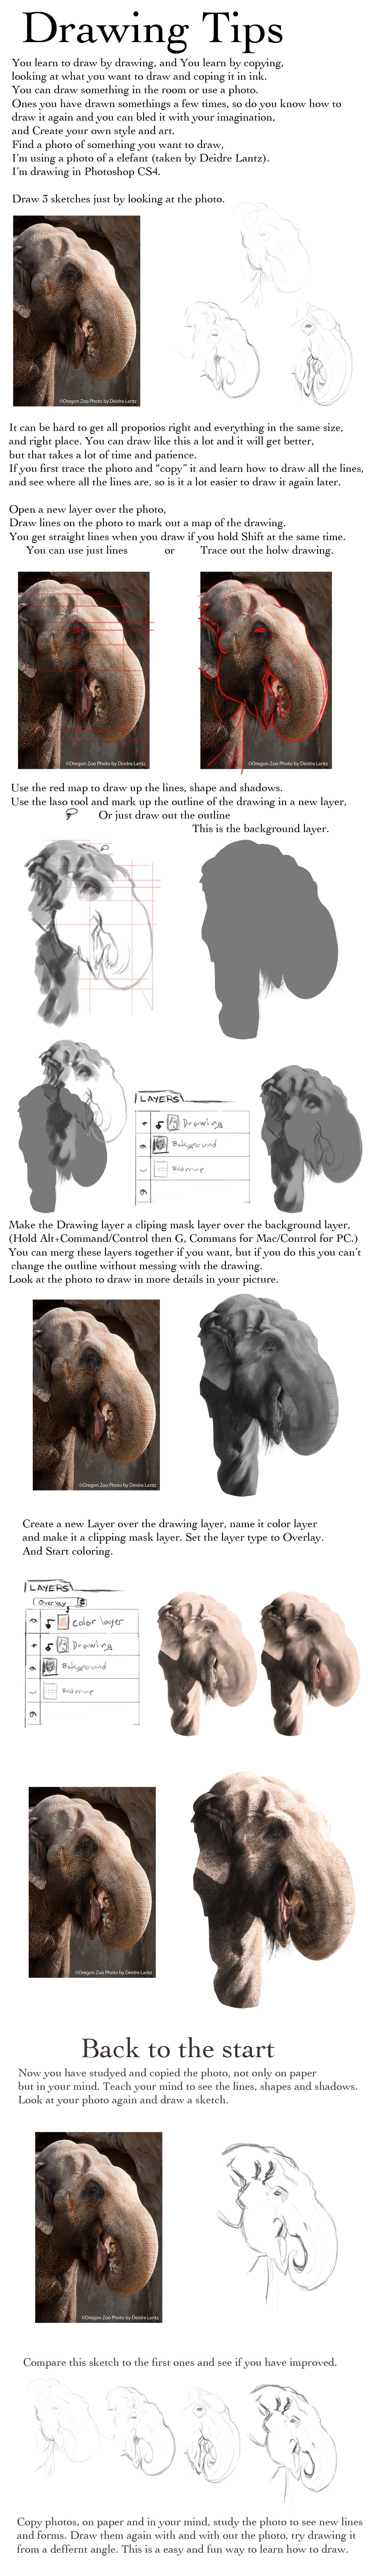 Drawing tips by elen89